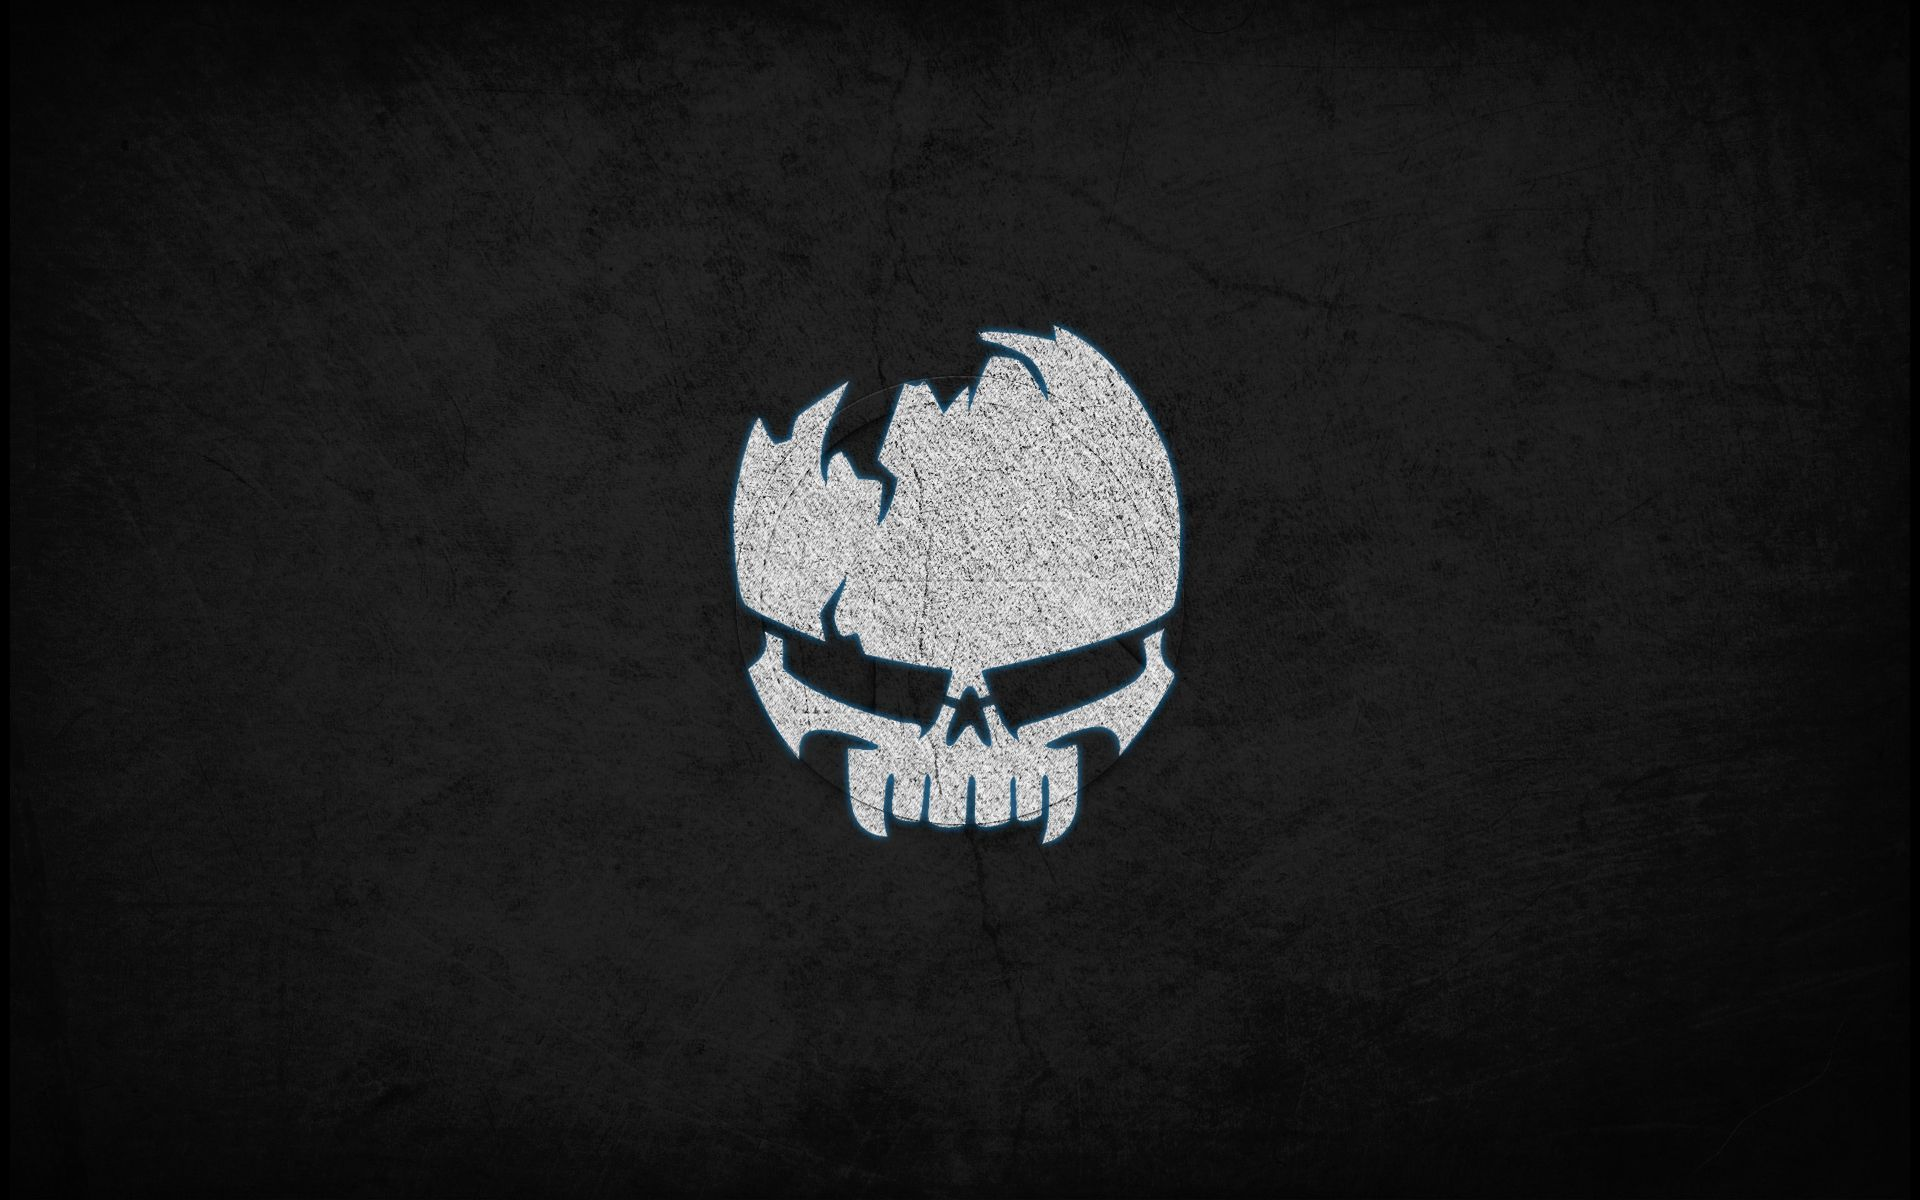 cool skull wallpaper hd 1920×1200 cool hd skull wallpapers (47